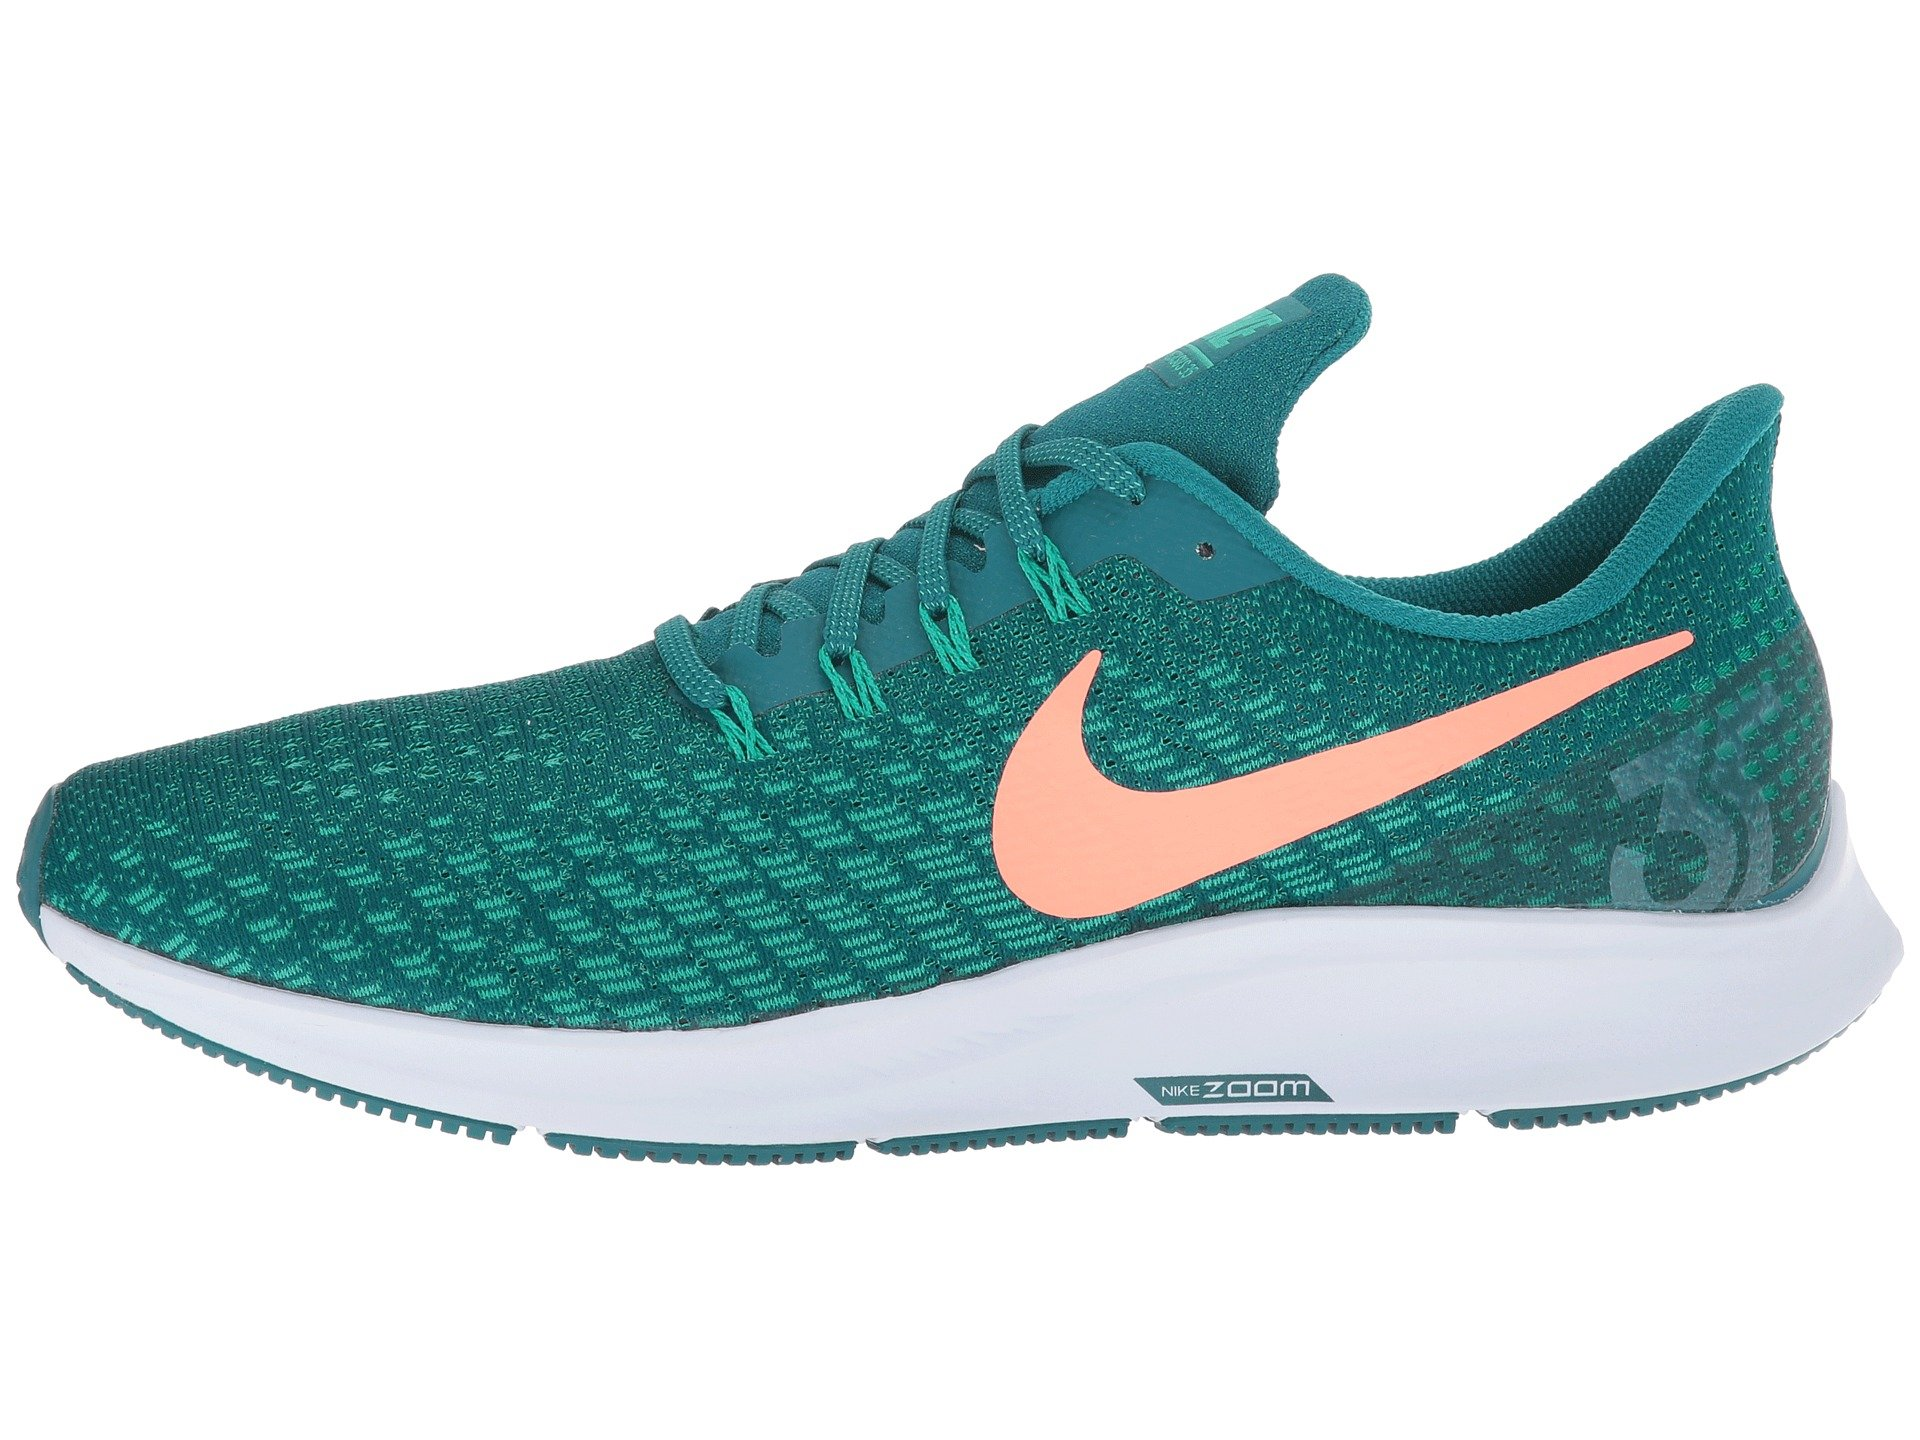 Running Nike Shoes Best 2019 Shoe Reviews 6n1T5wxq0